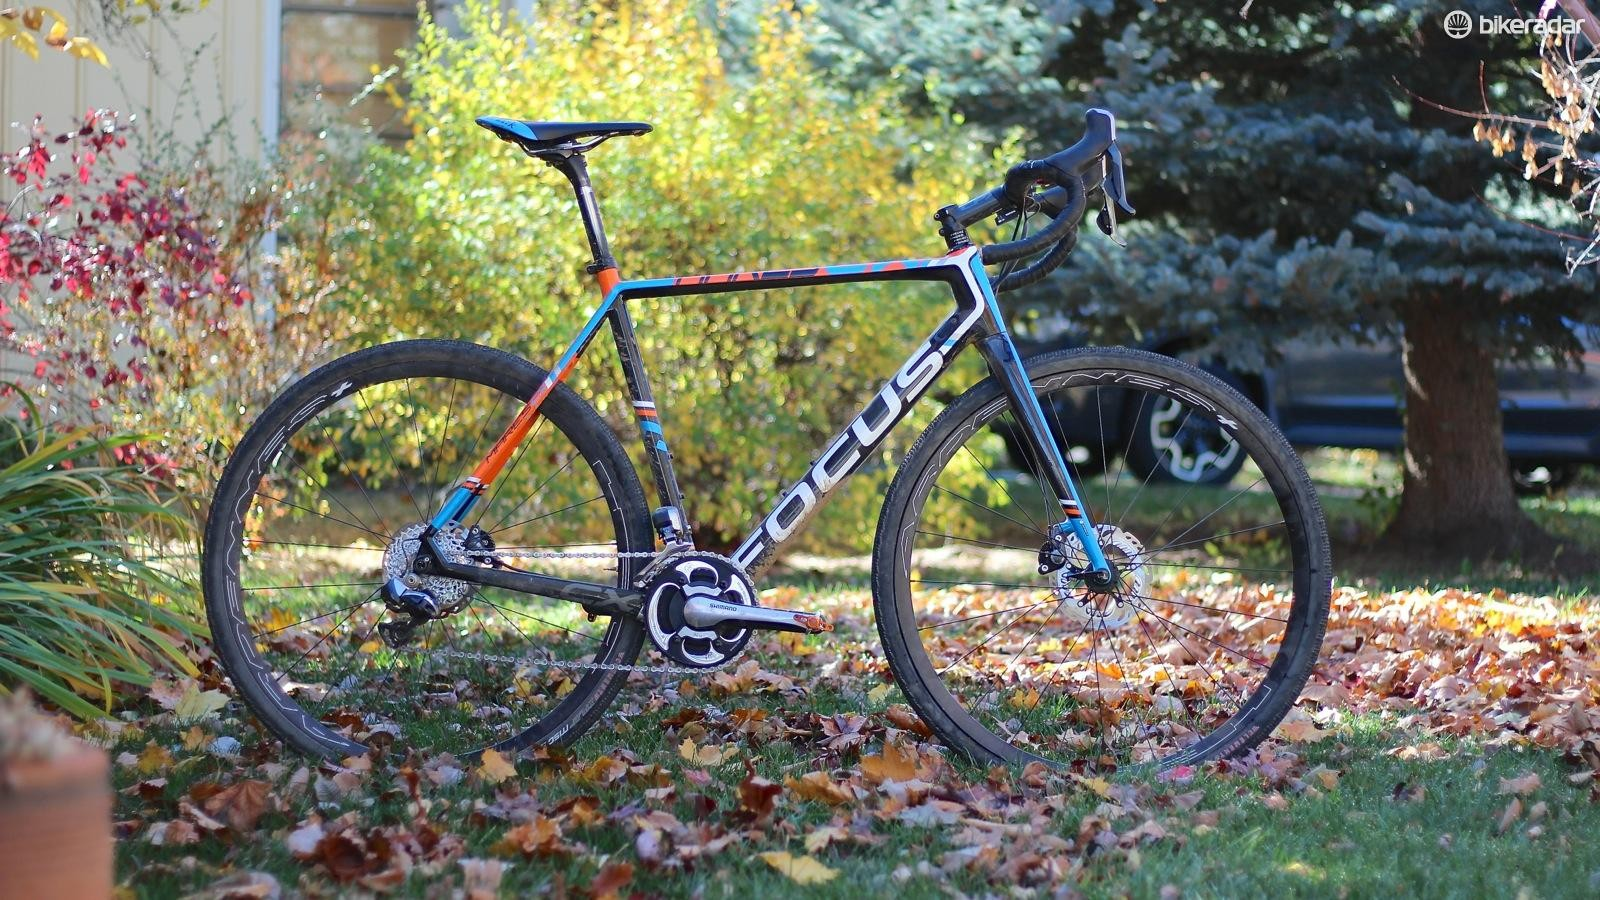 My race rig for the Crusher is a slightly modified version of my cyclocross race bike